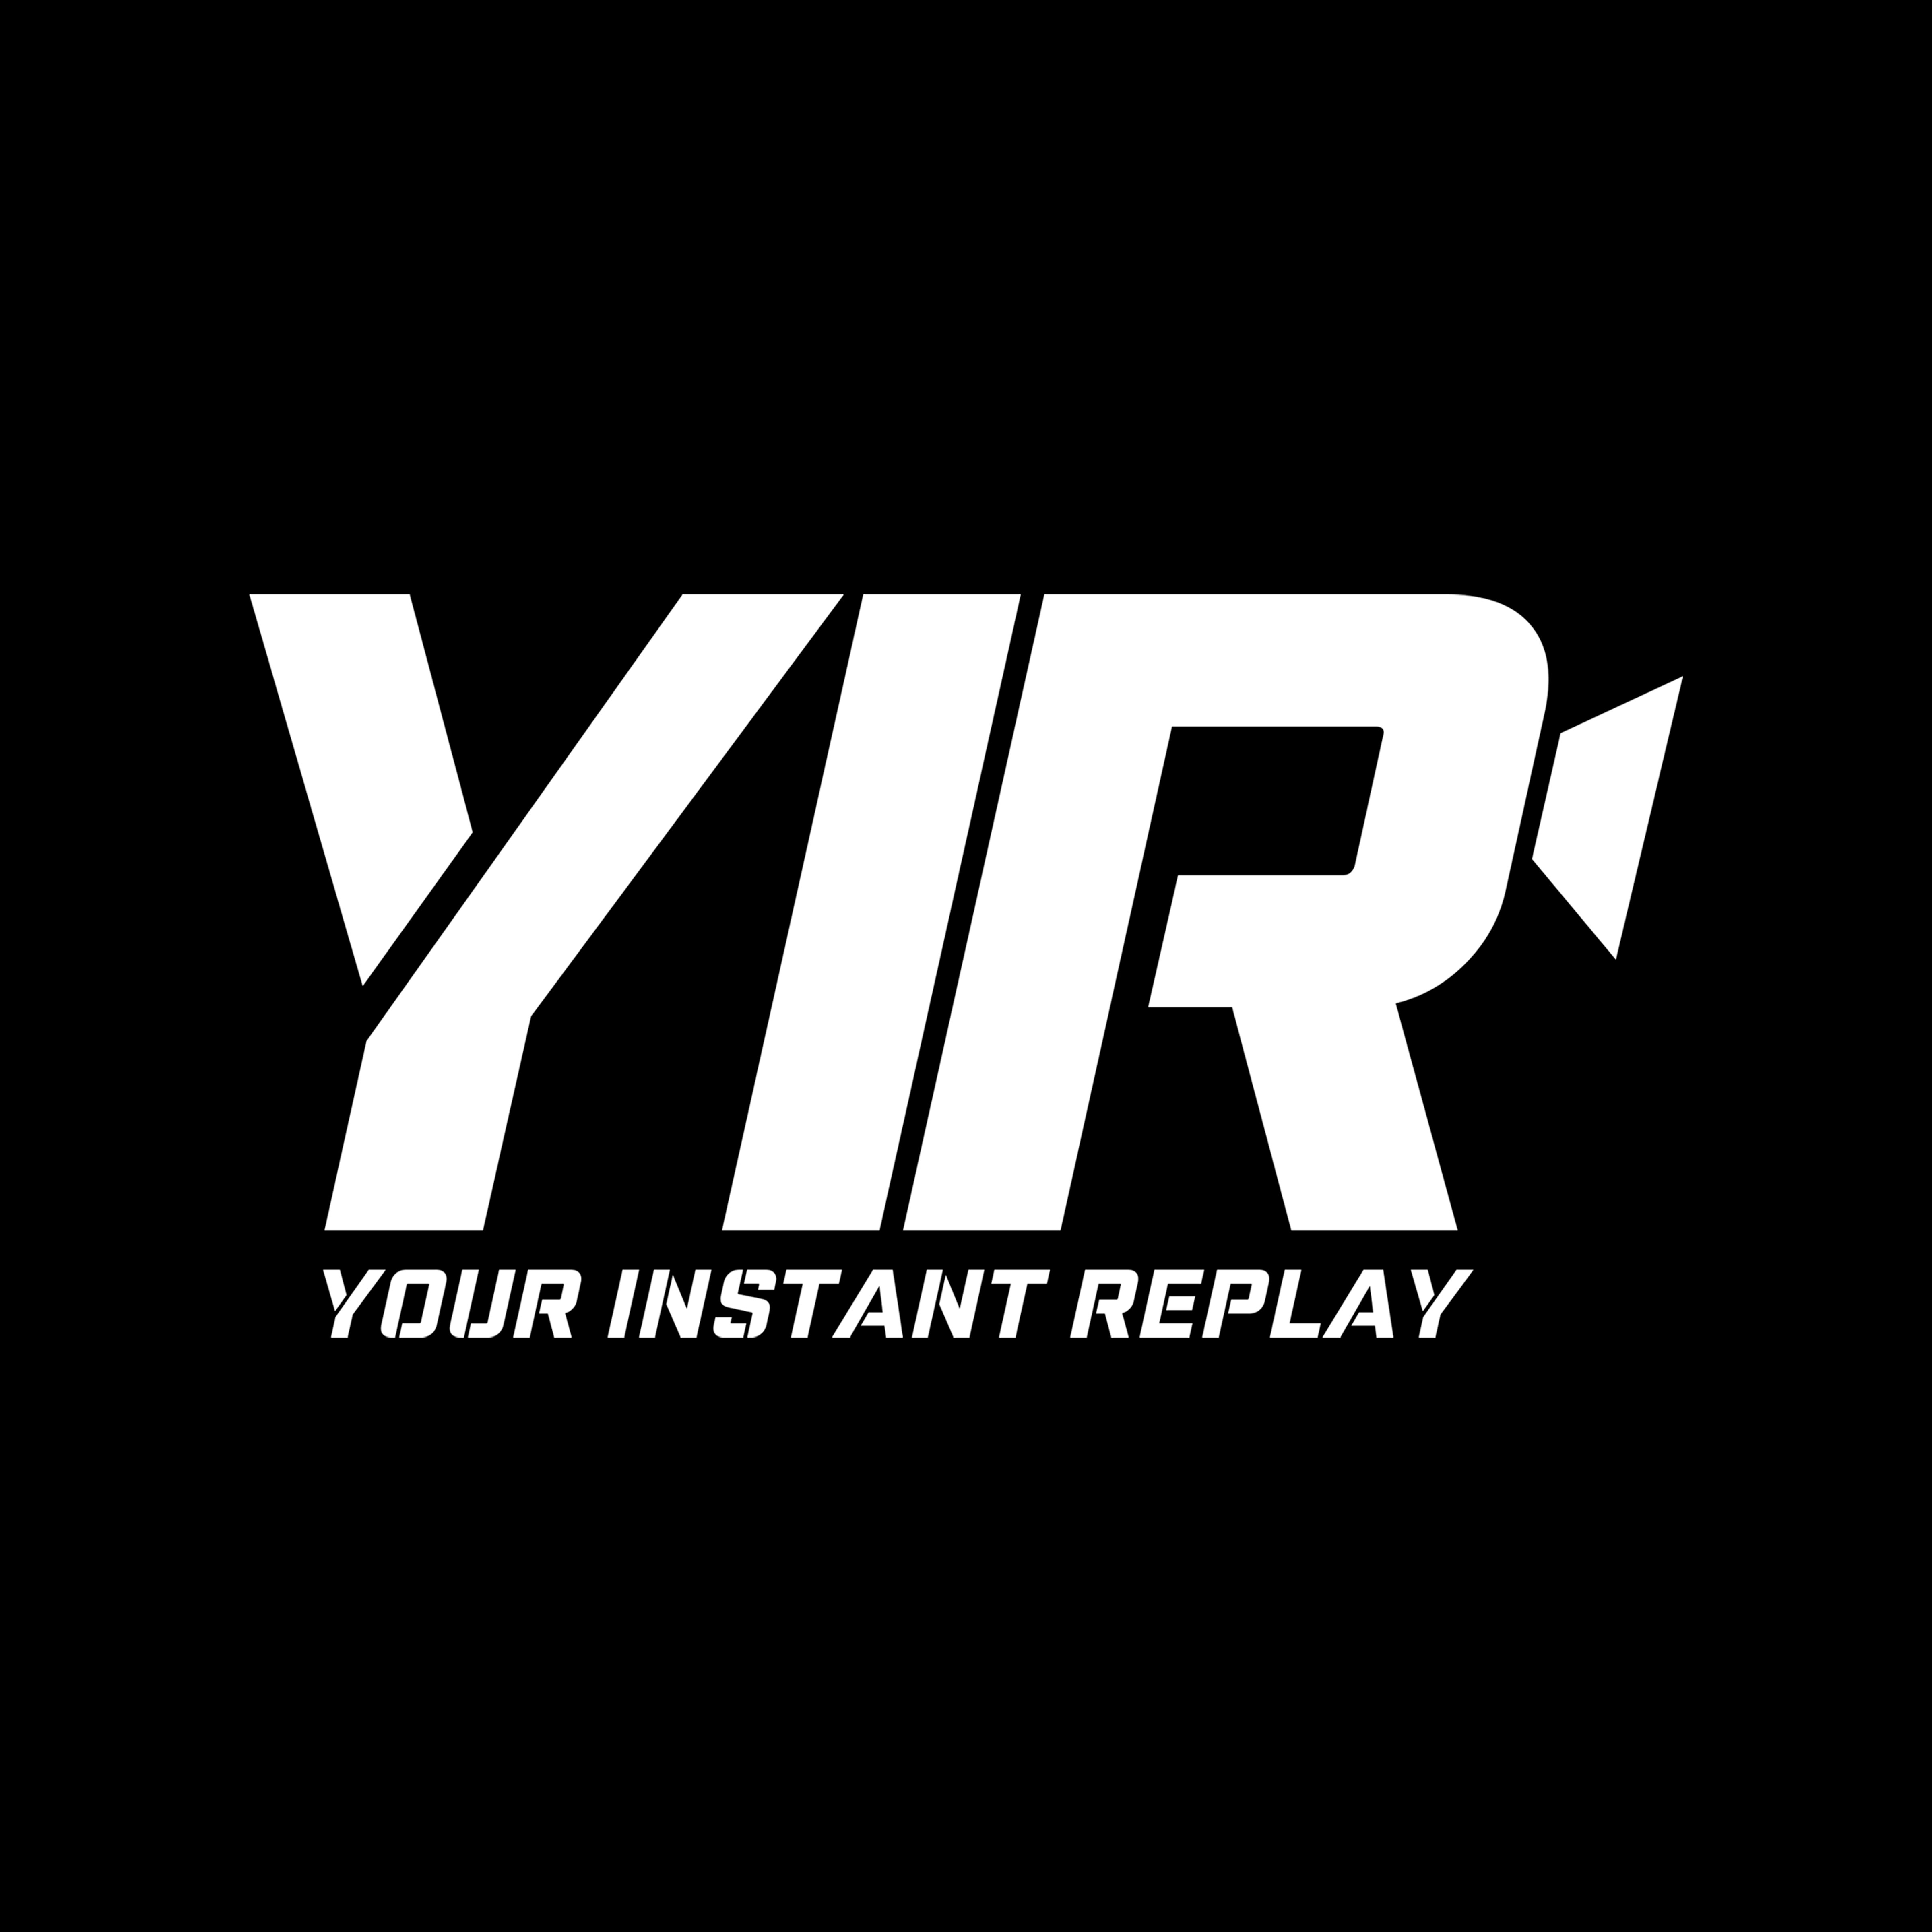 Your Instant Replay